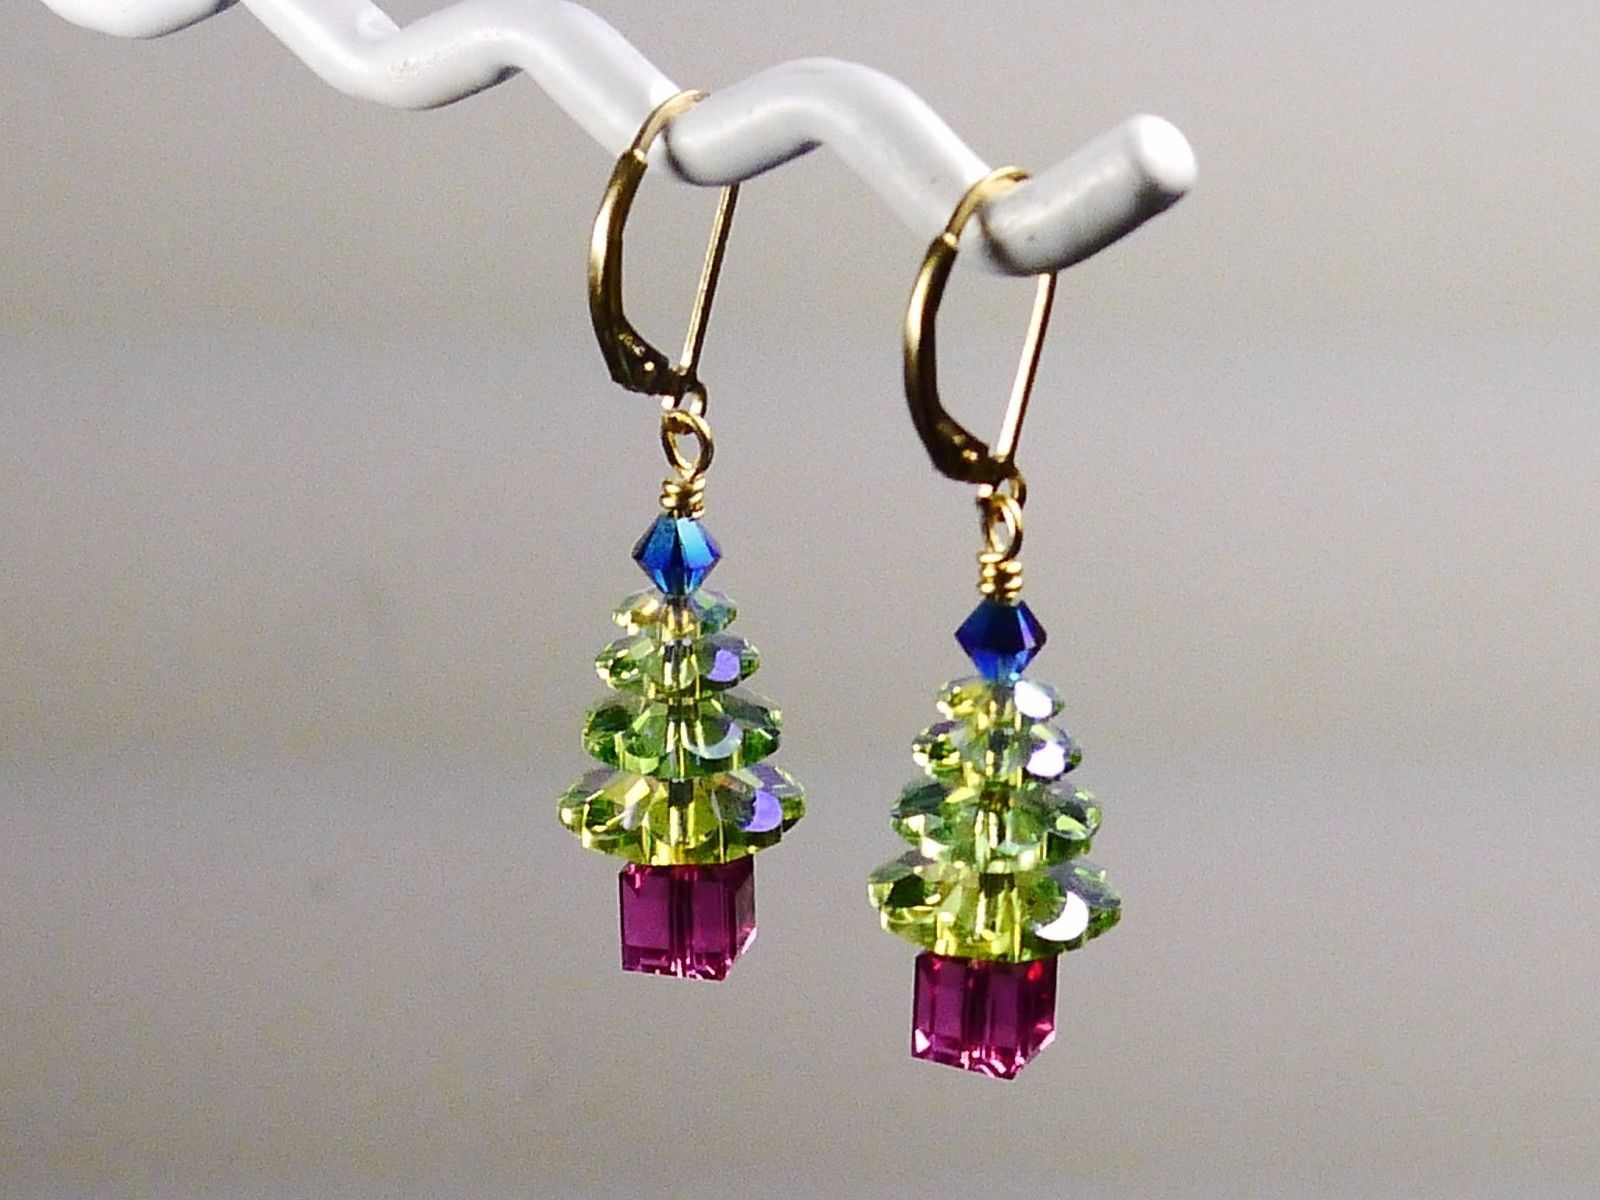 Christmas Tree Holiday Earrings/ 1 OF A KIND /made w/Swarovski Crystals/14k Gold image 2